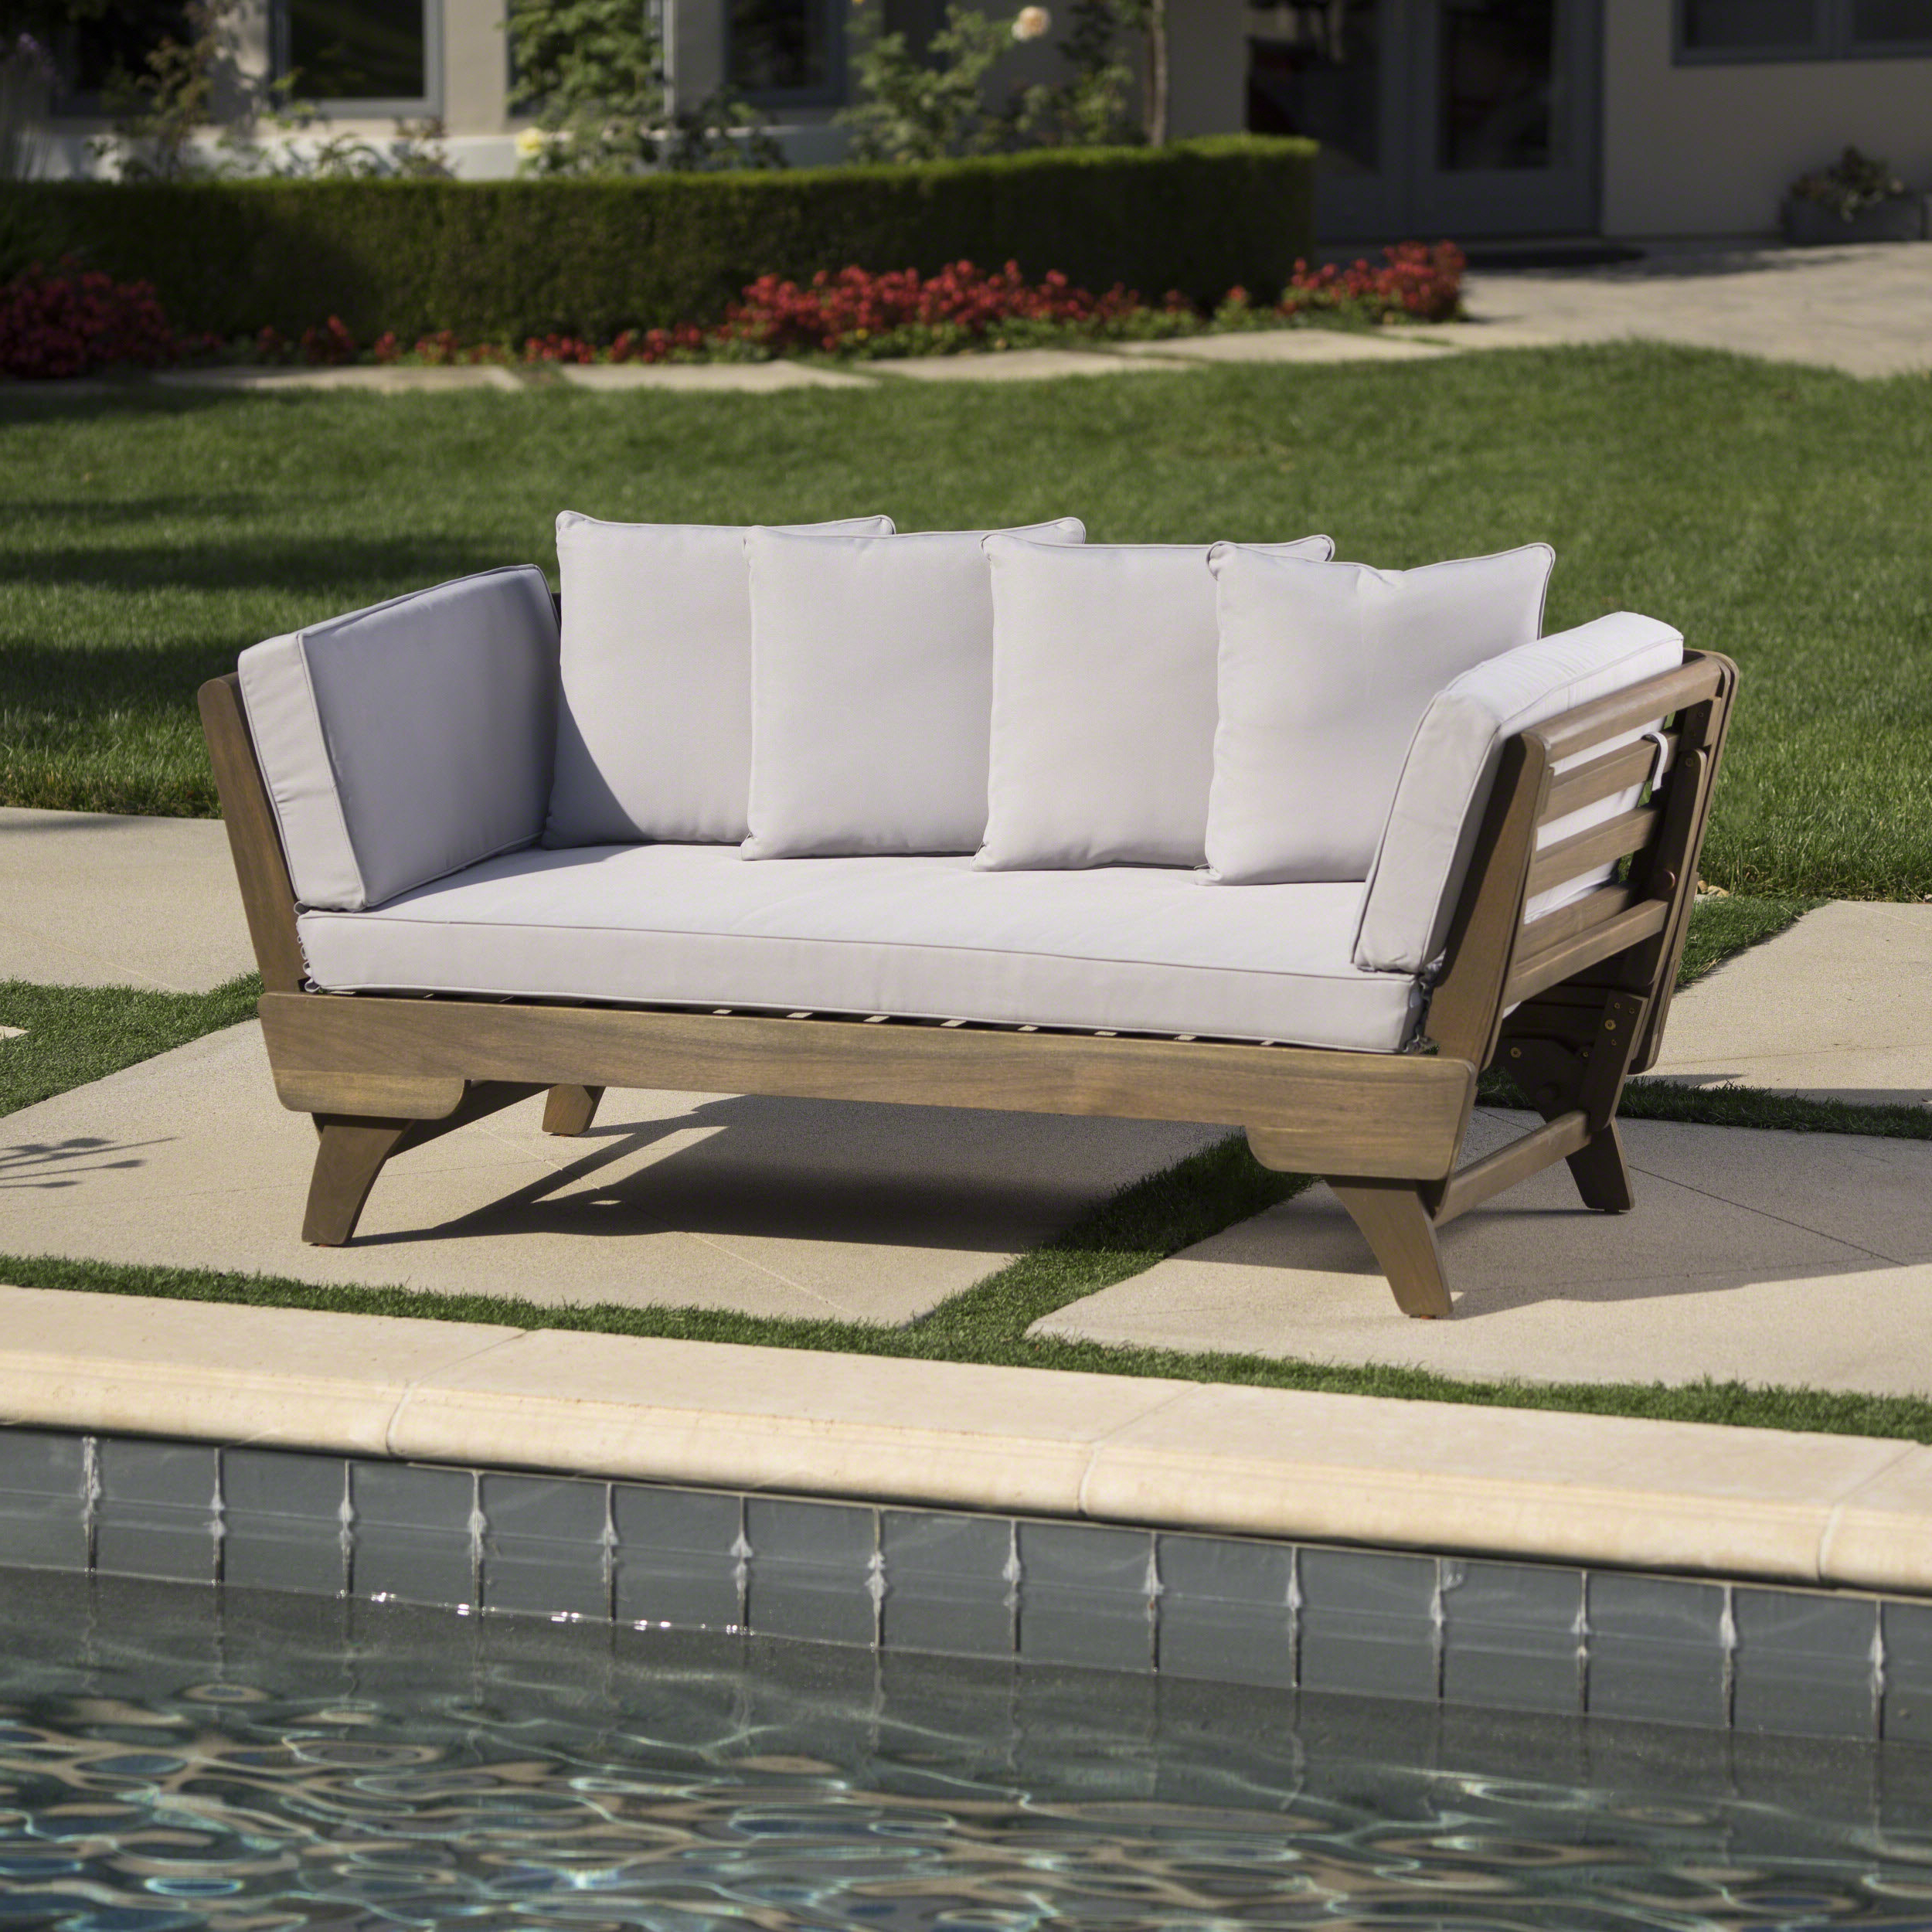 Aubrie Patio Daybeds With Cushions Throughout Newest Ellanti Teak Patio Daybed With Cushions (View 9 of 25)